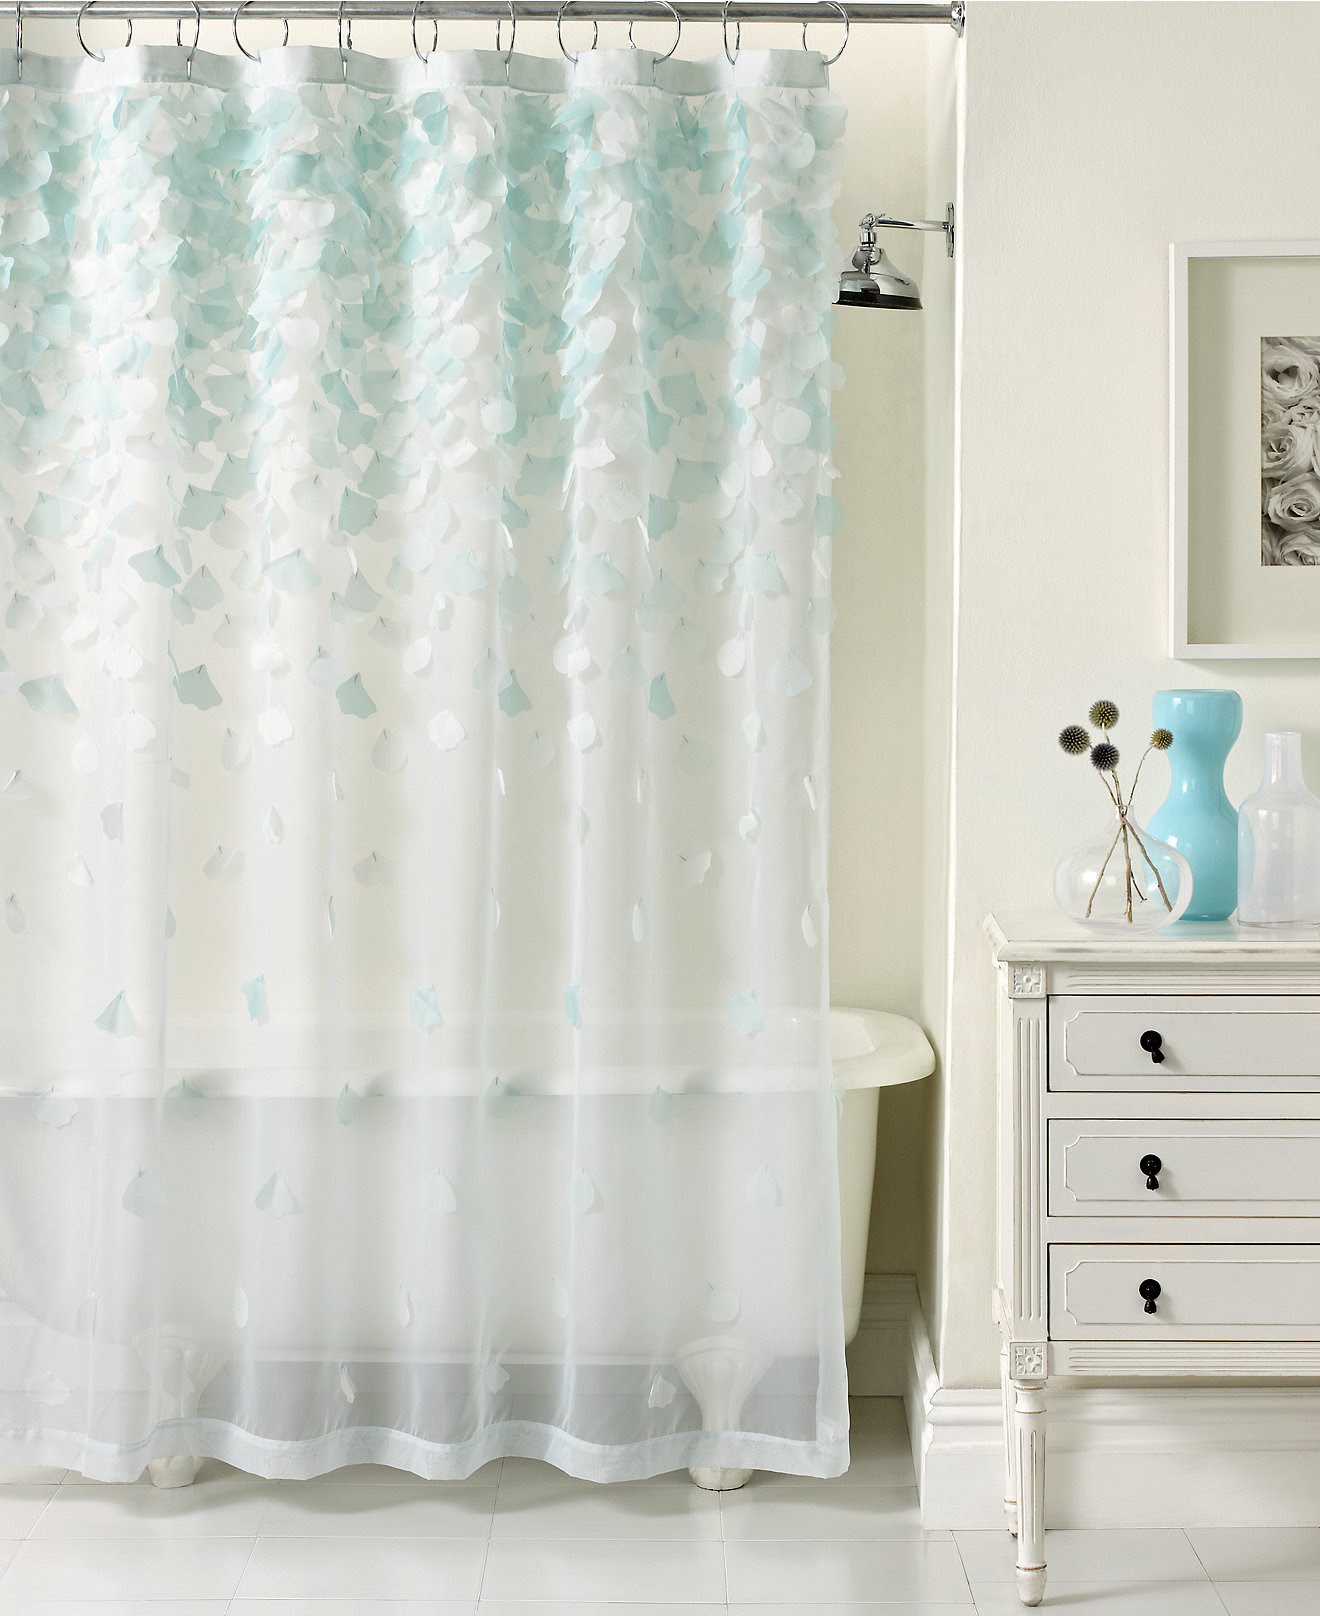 Charming Clear Shower Curtain With Design And White Cabinet